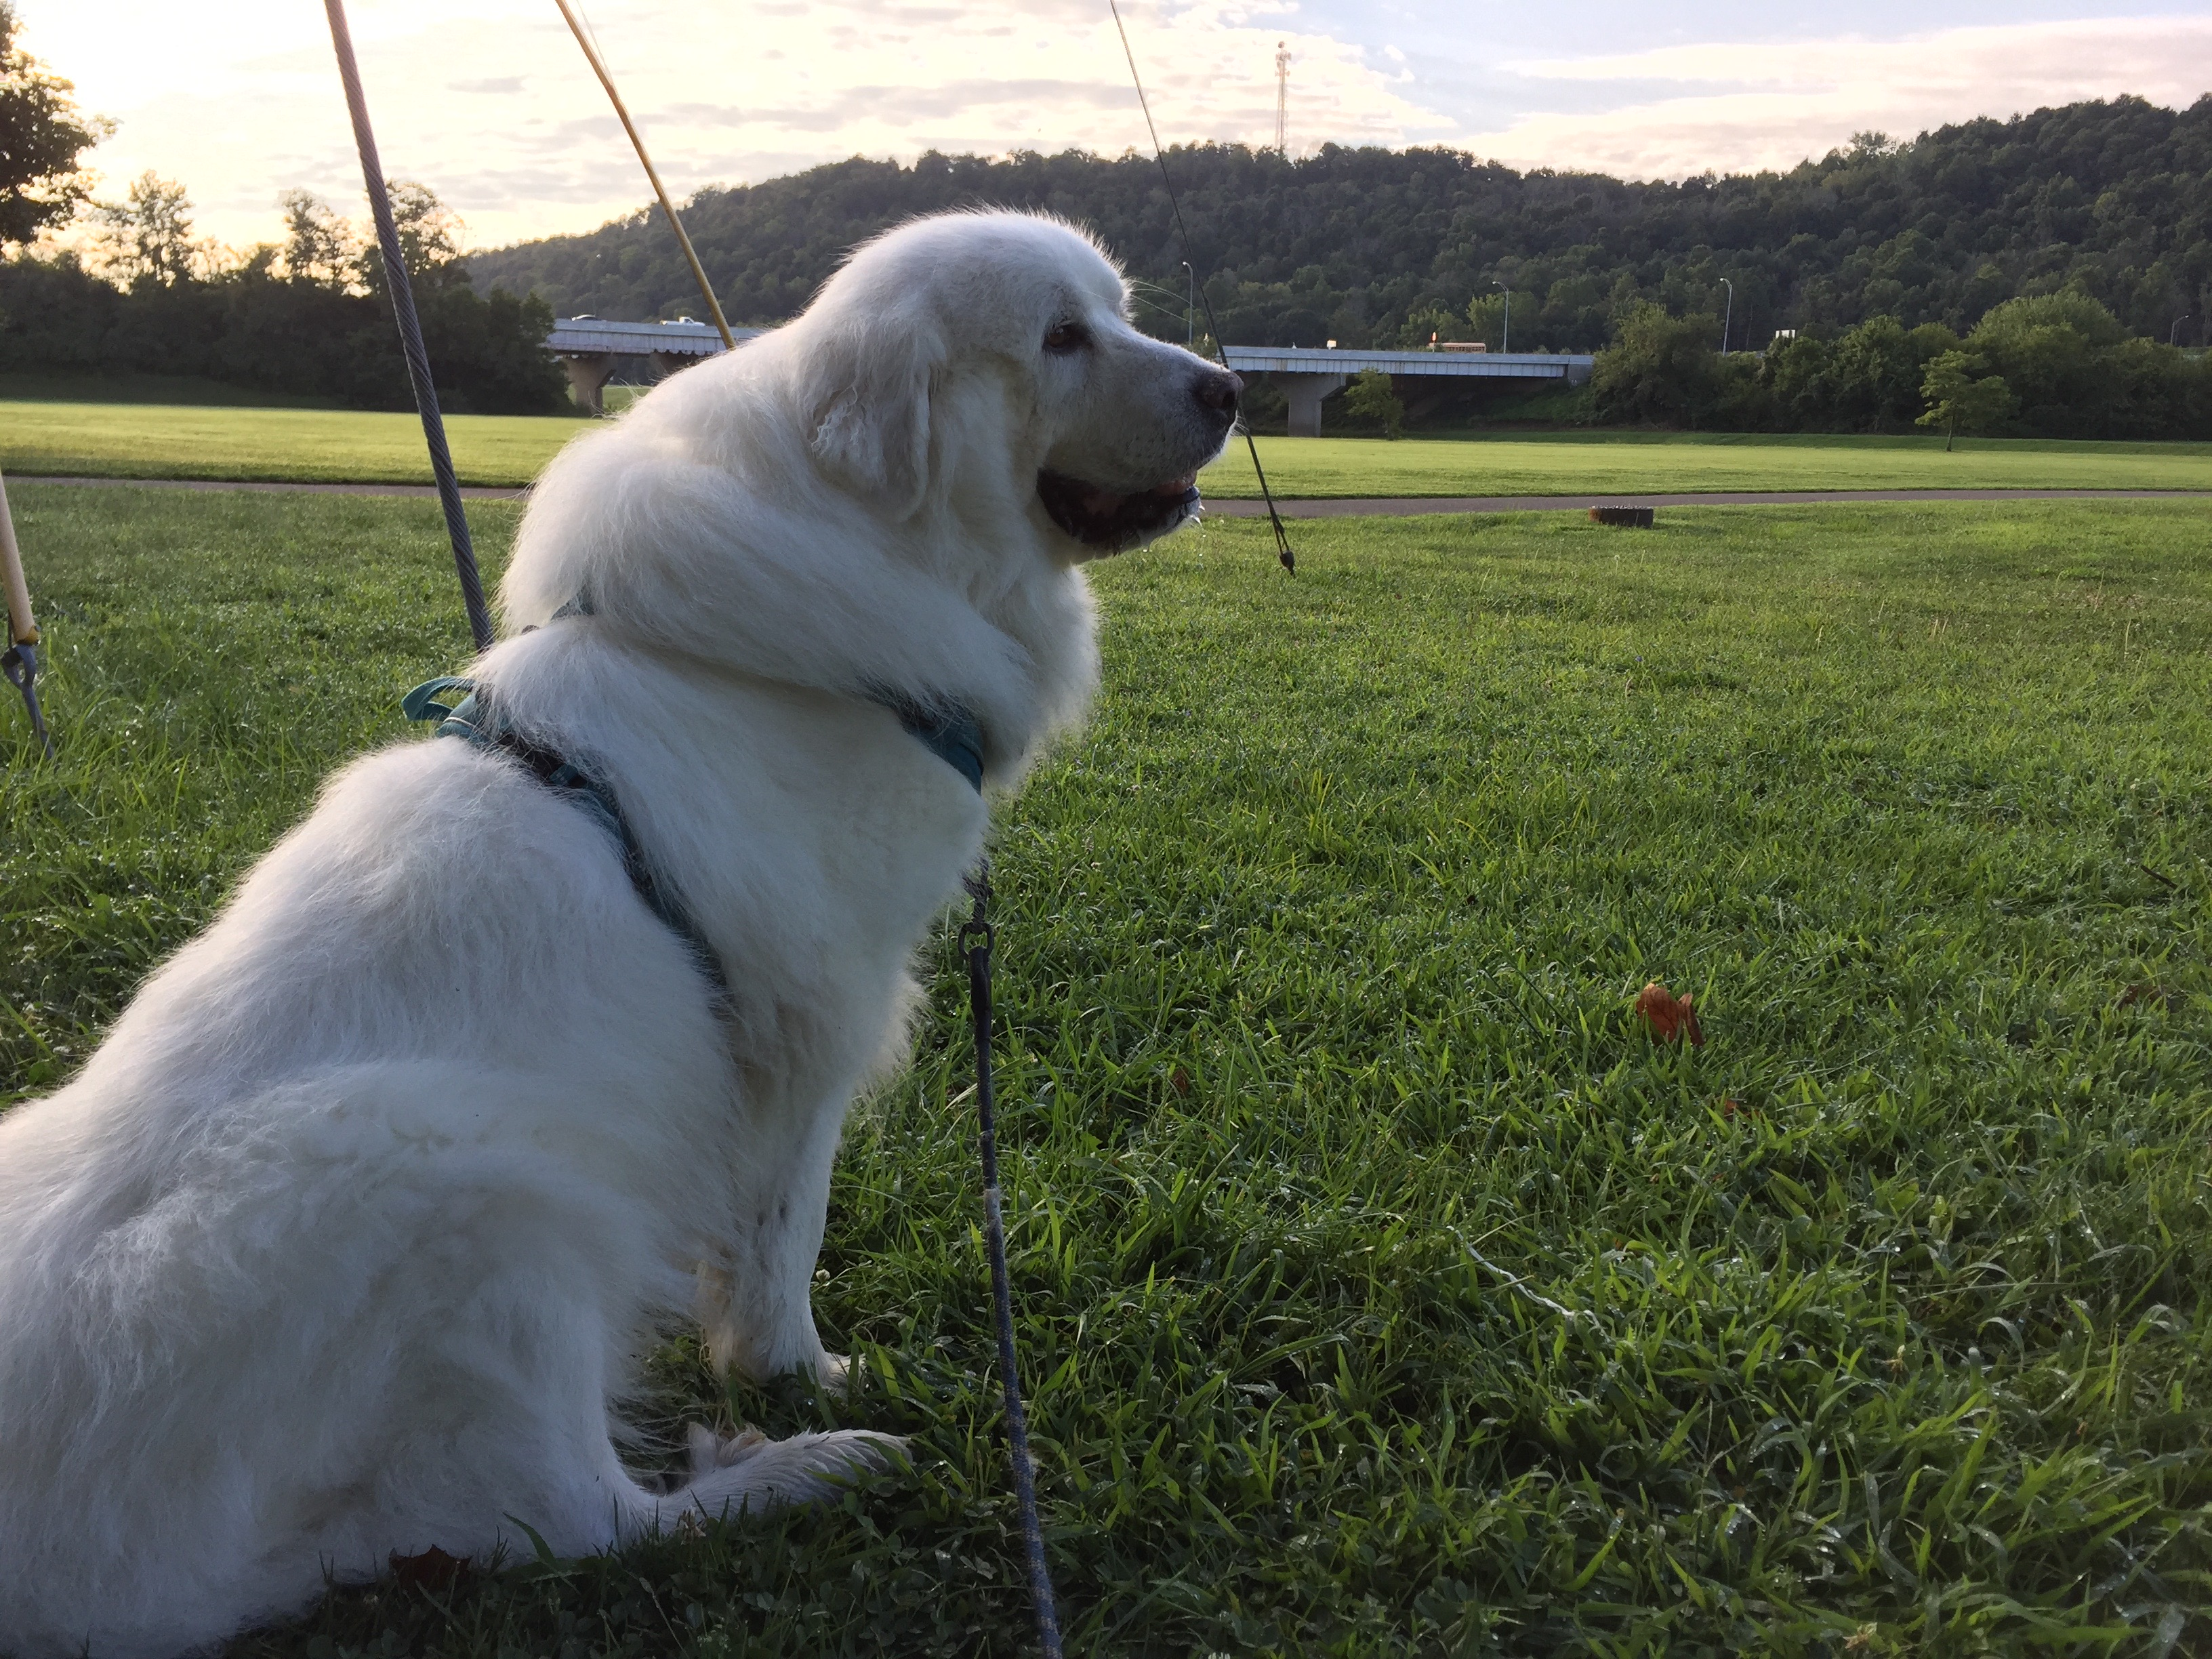 Sunny pauses to admire the morning during her walk.